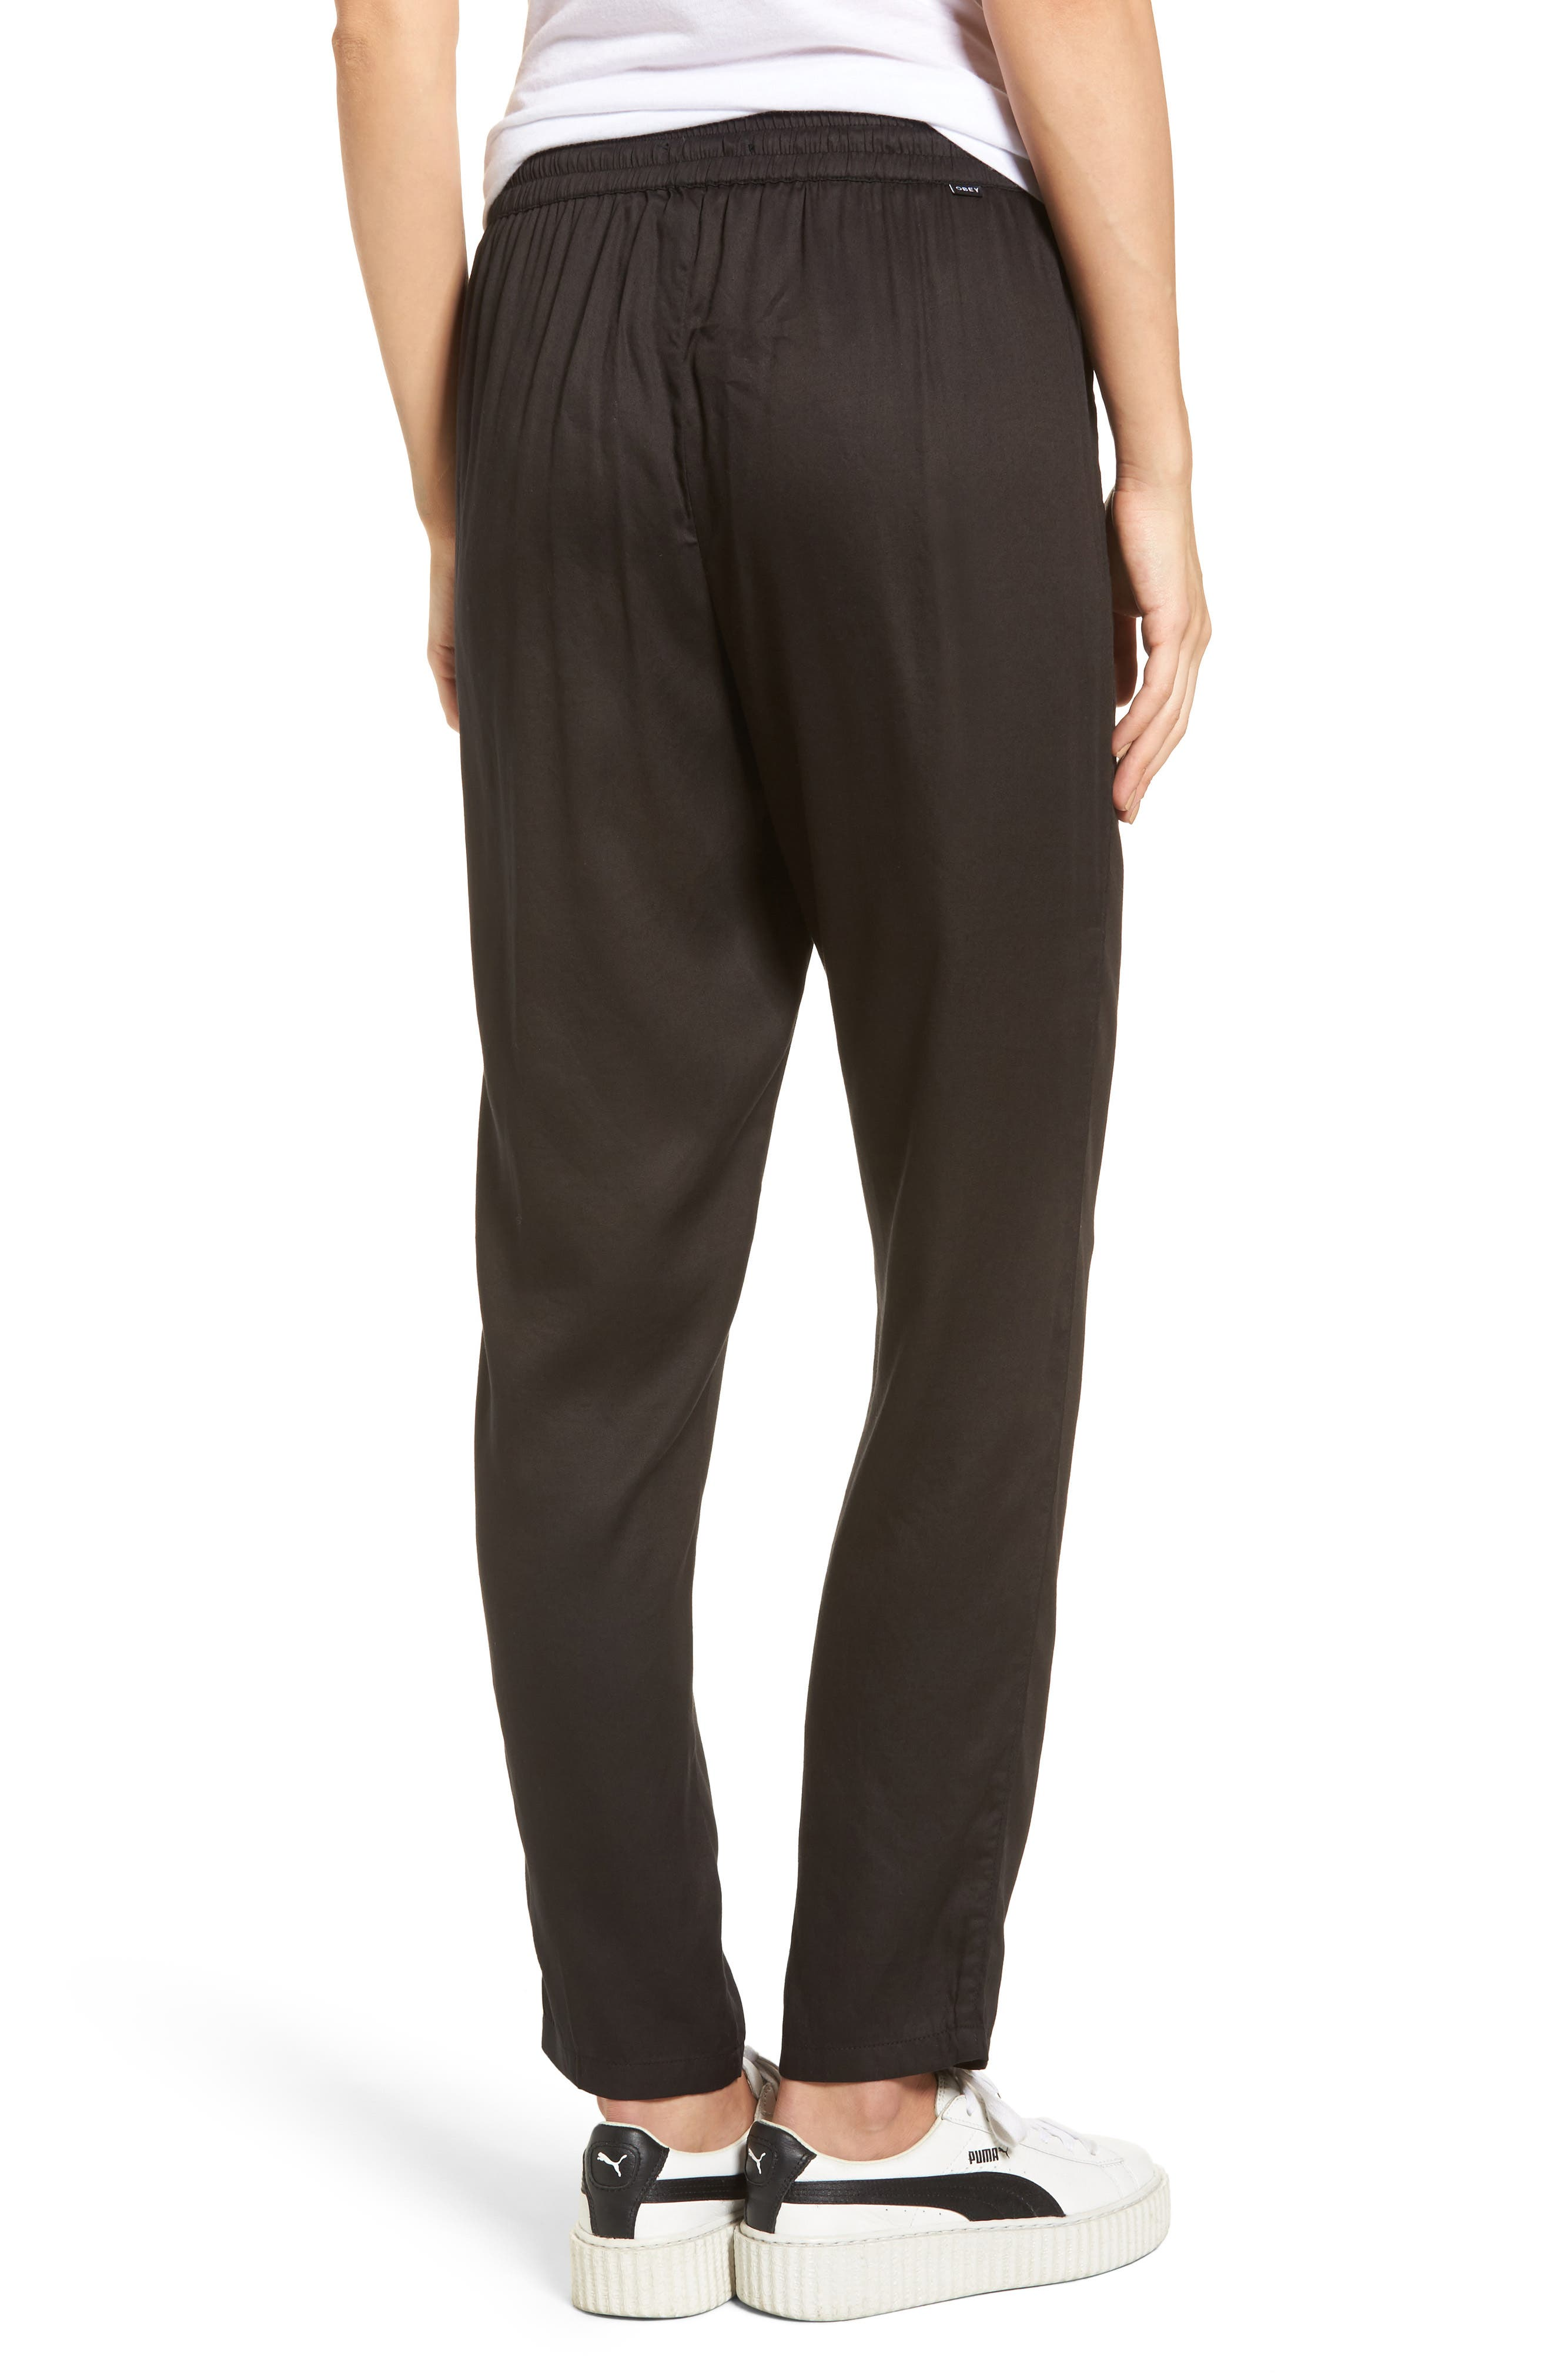 Savoy Satin Pants,                             Alternate thumbnail 2, color,                             001